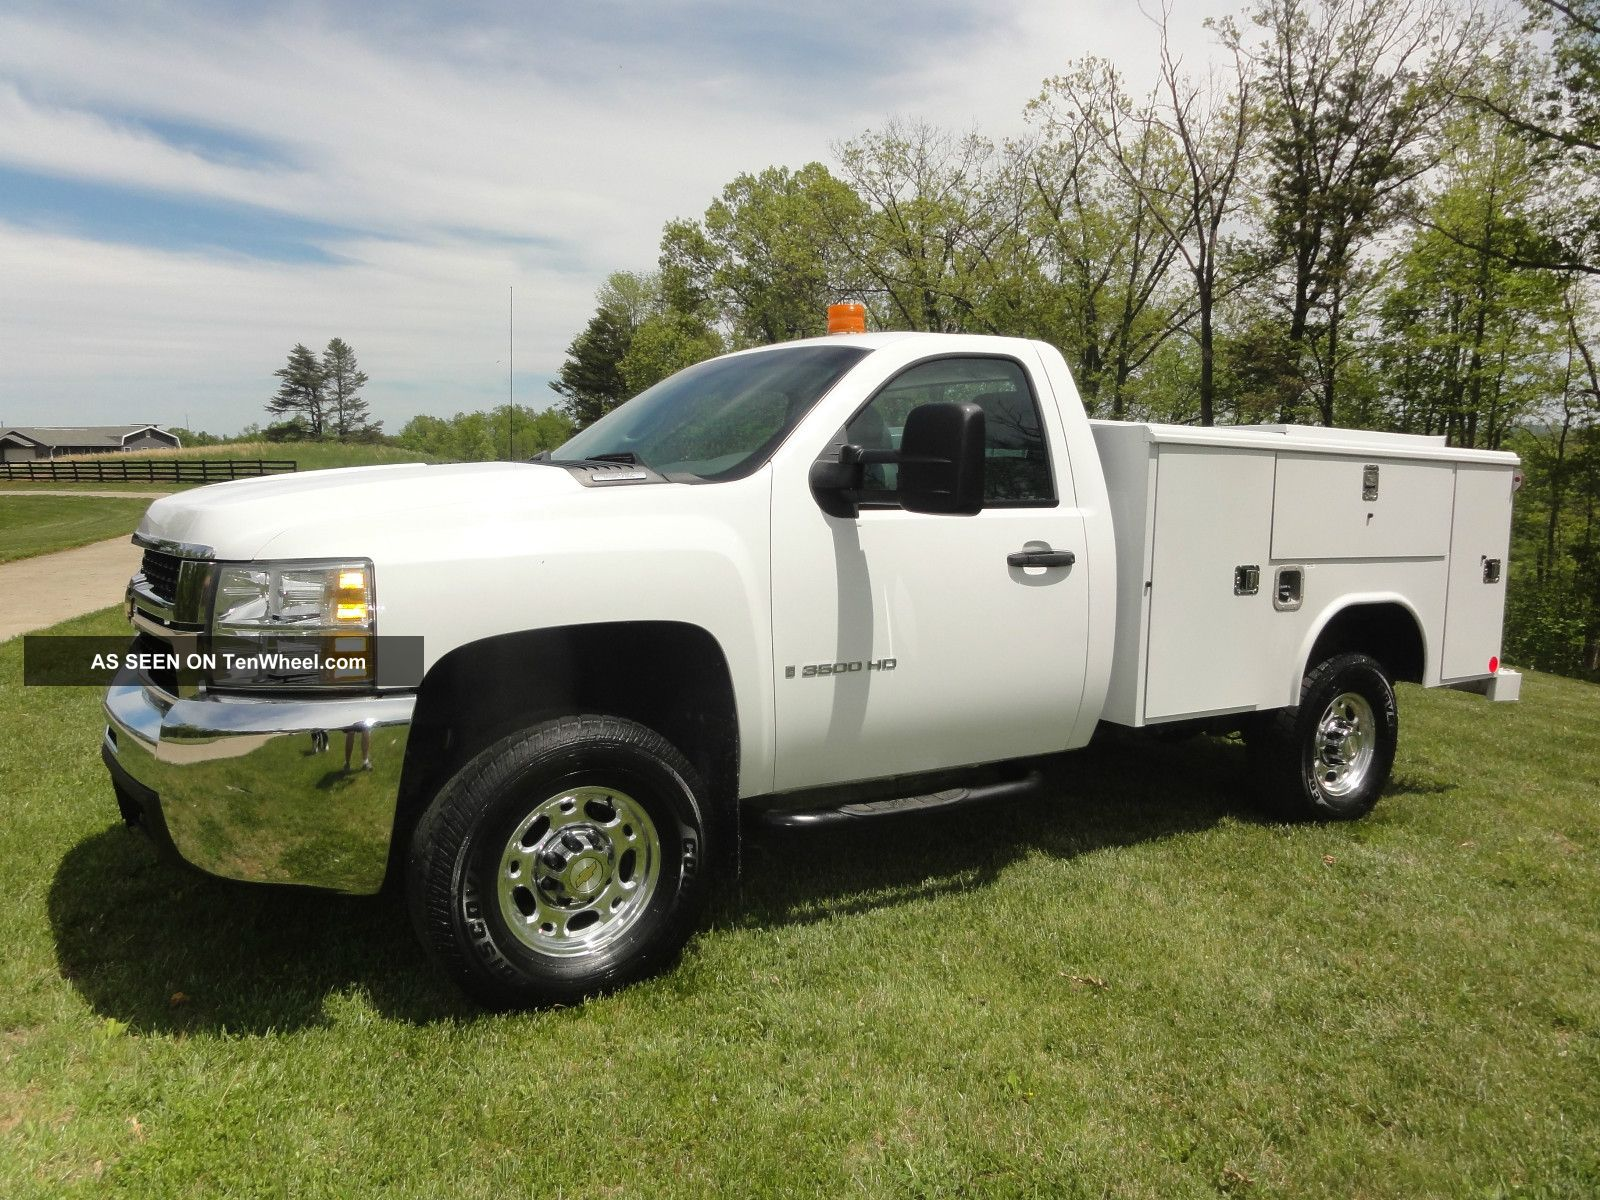 2008 Chevrolet Silverado 3500 Hd 4 X 4 Silverado 3500 photo